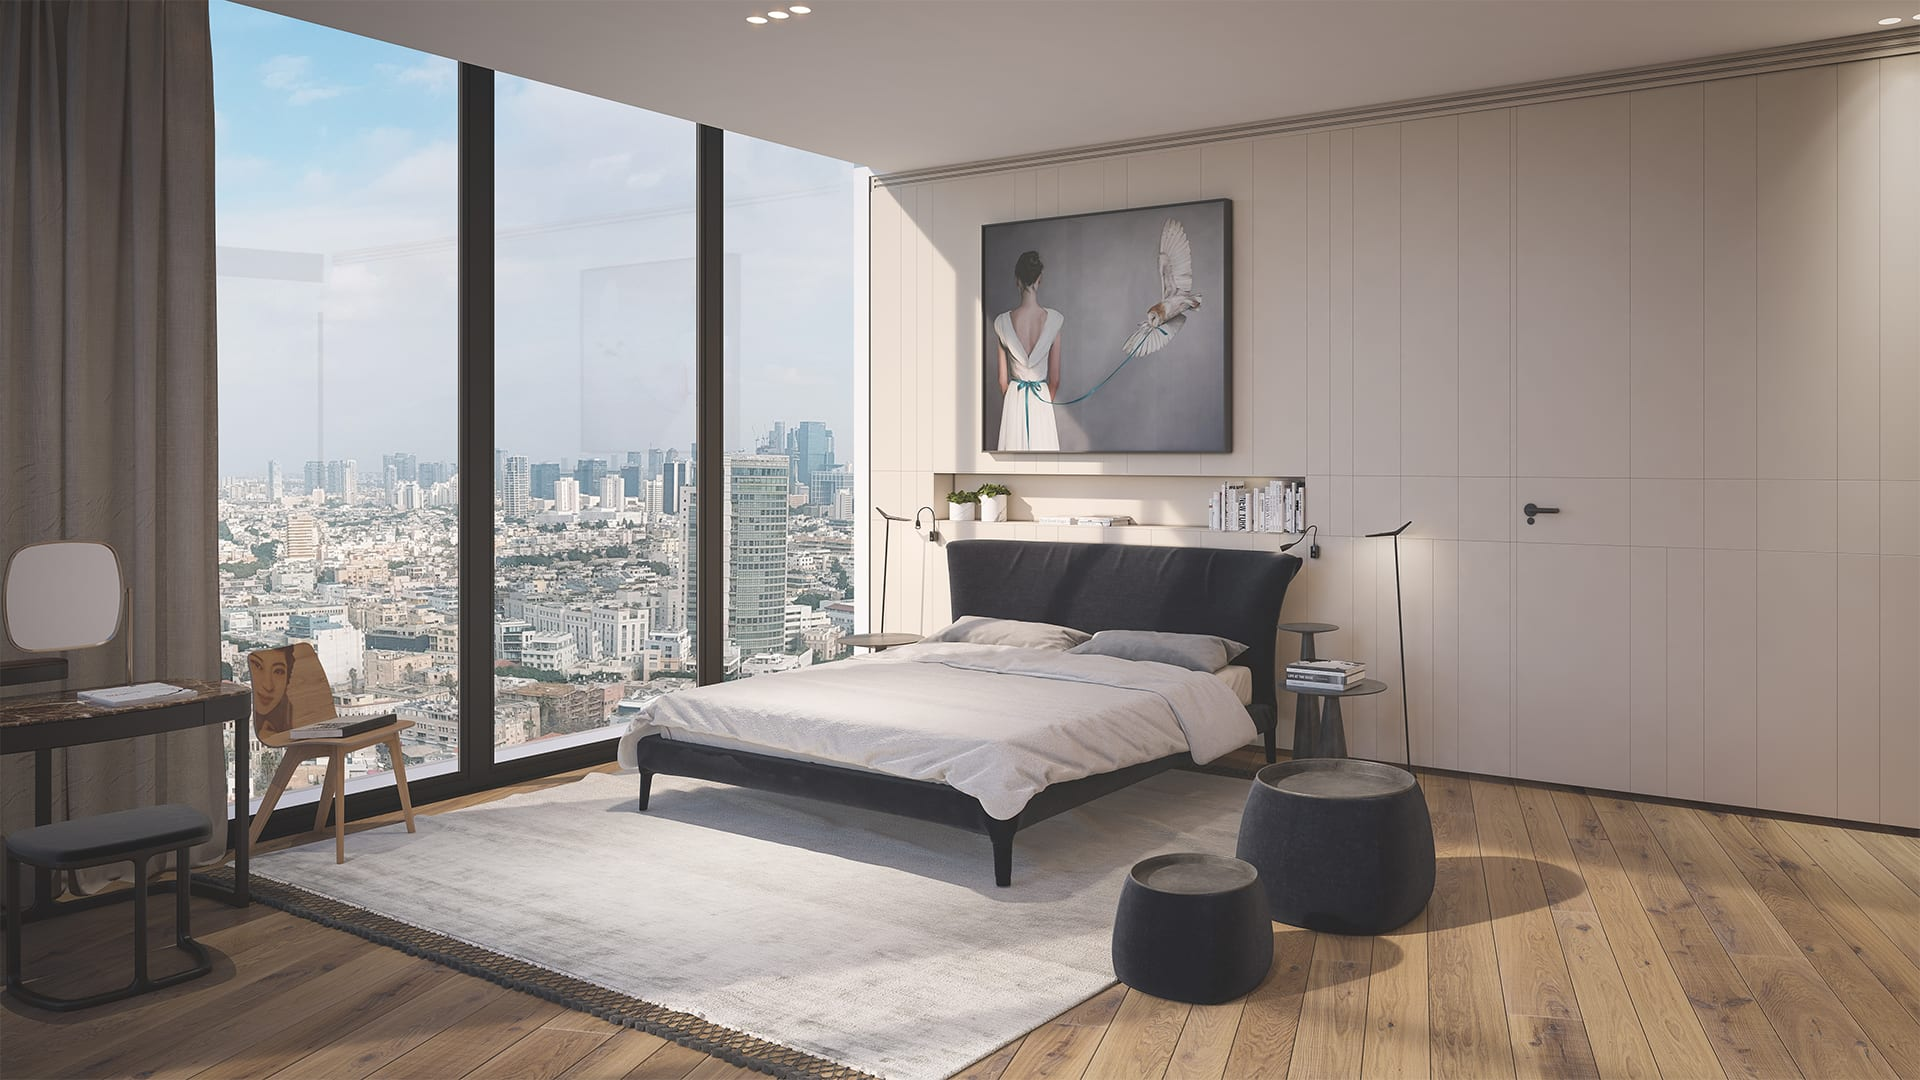 Maayan-Golan_Architectural-Visualization_interior-design-visualization_ white-city-penthouse_design-tal-tamir_bedroom_01